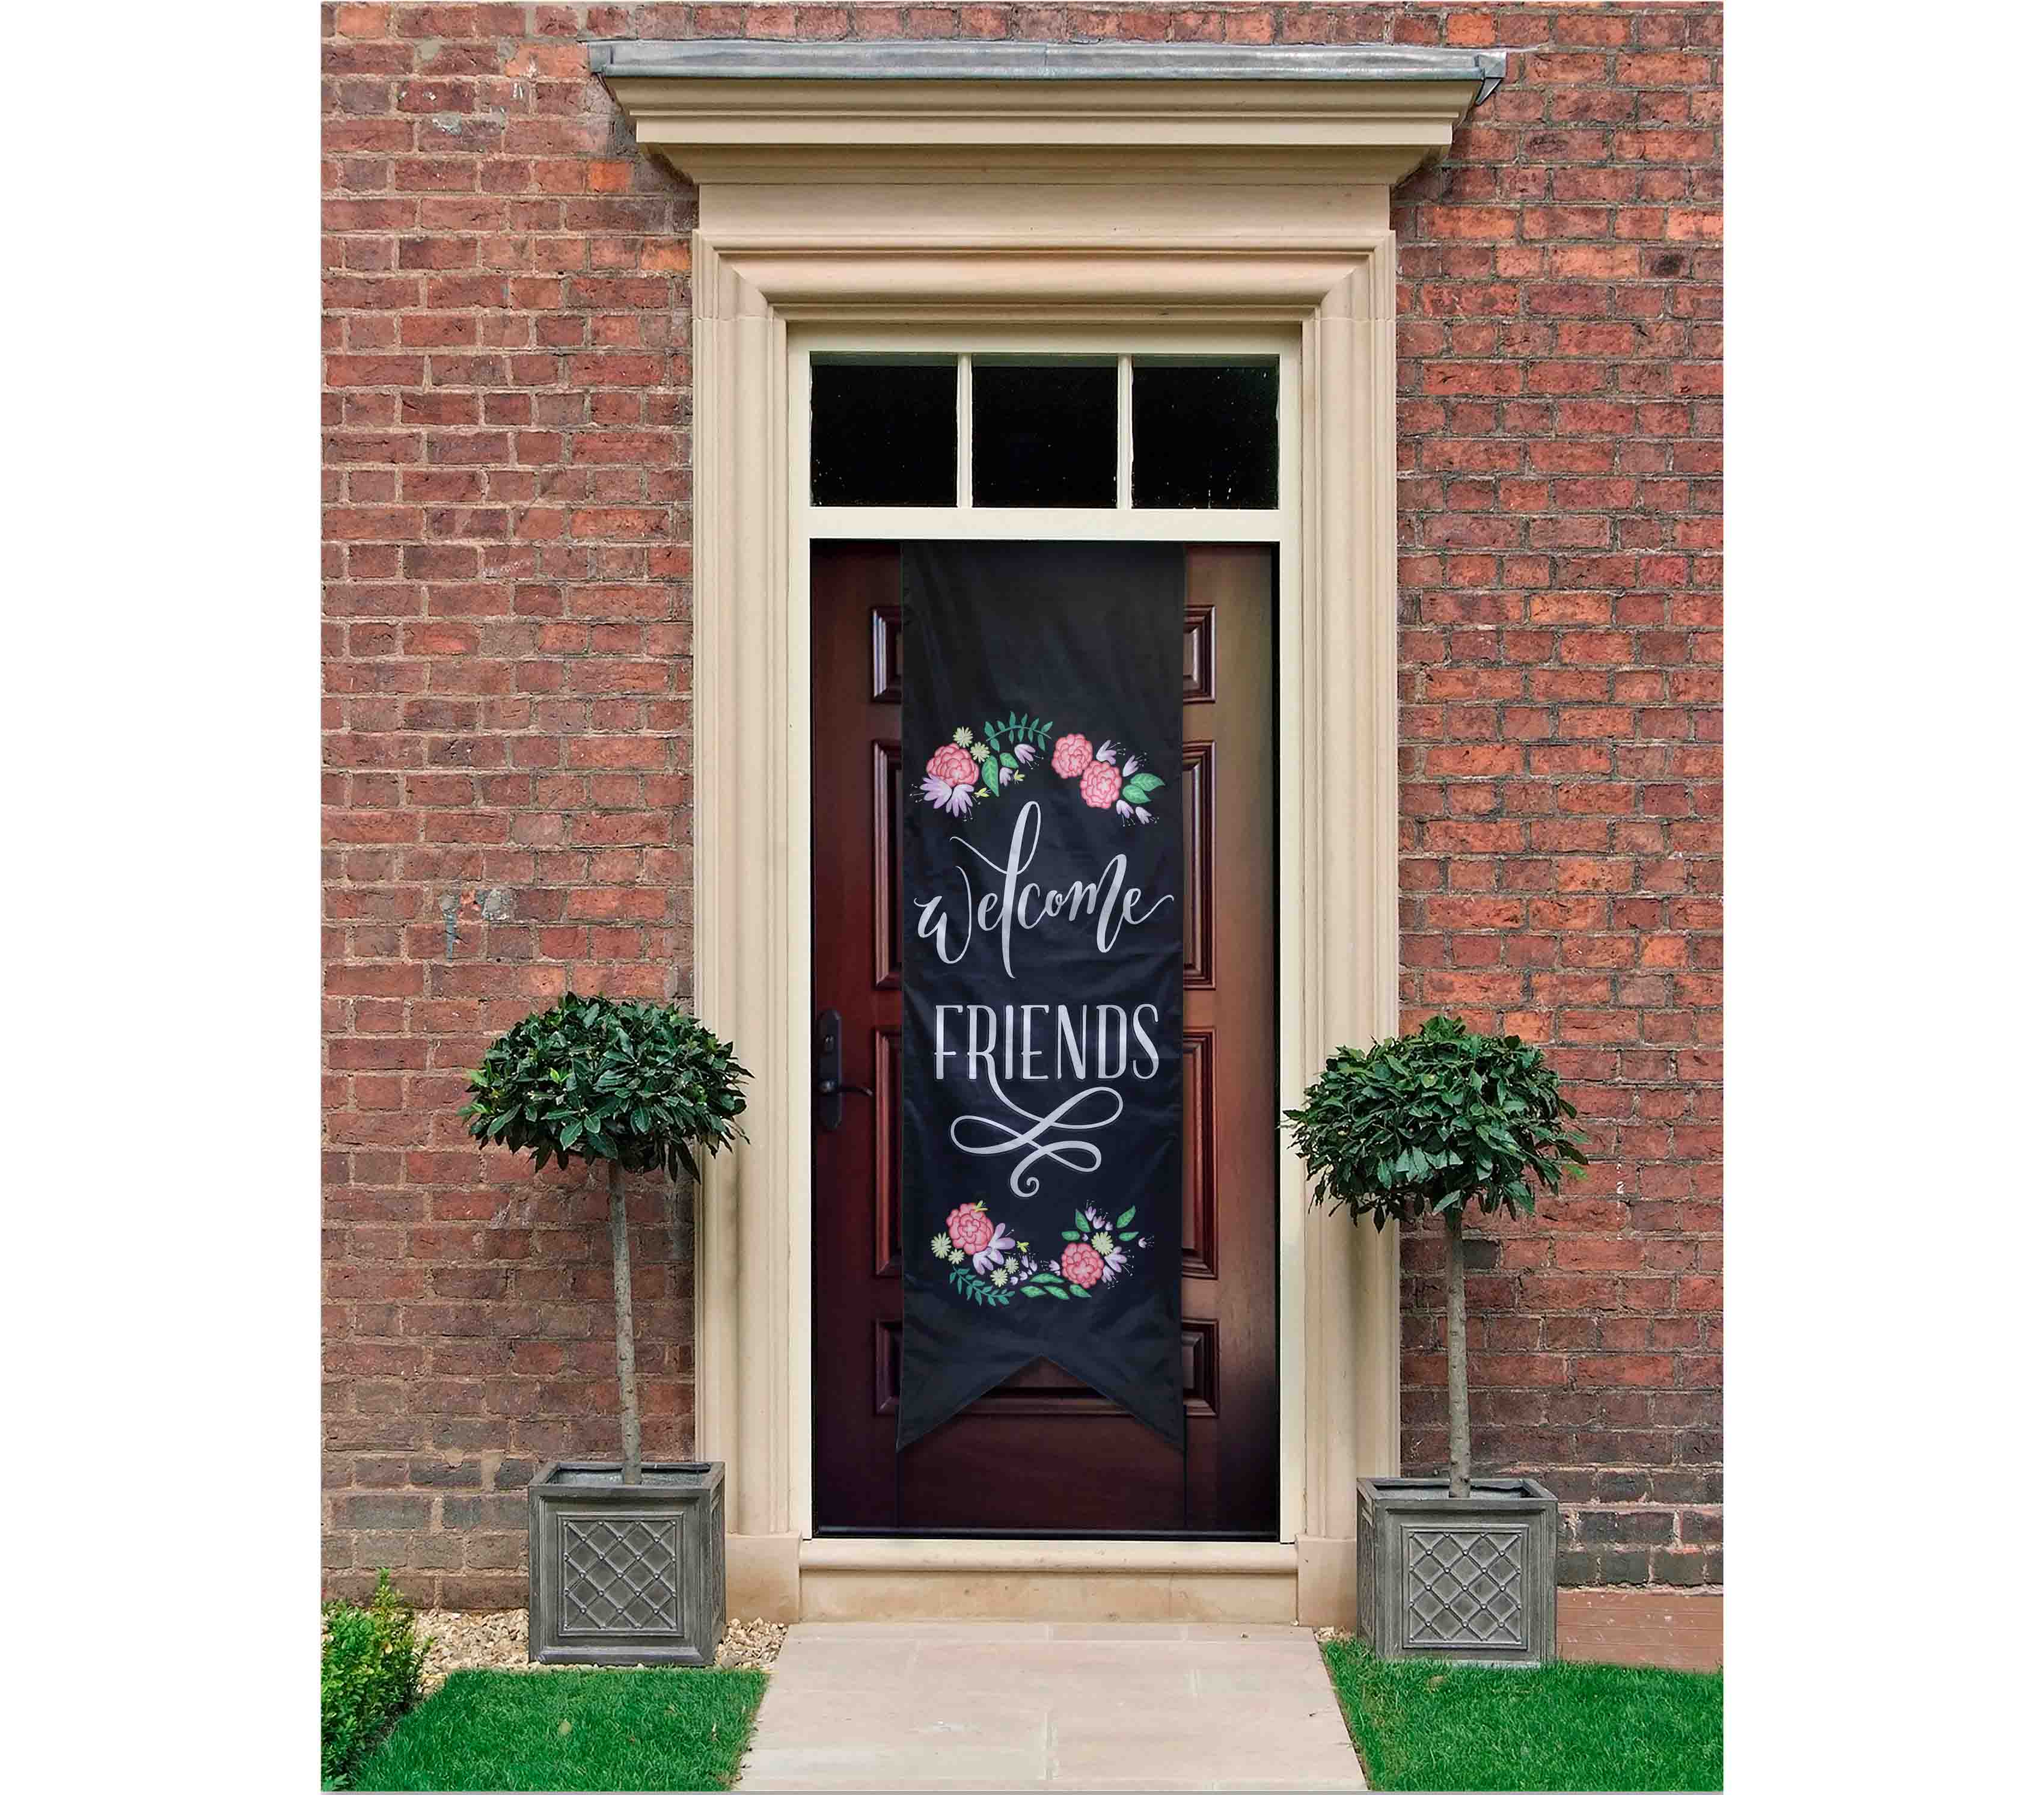 Welcome Friends Banner  sc 1 st  FairHope Notes - Shopify & Welcome Friends Banner | FairHope Notes